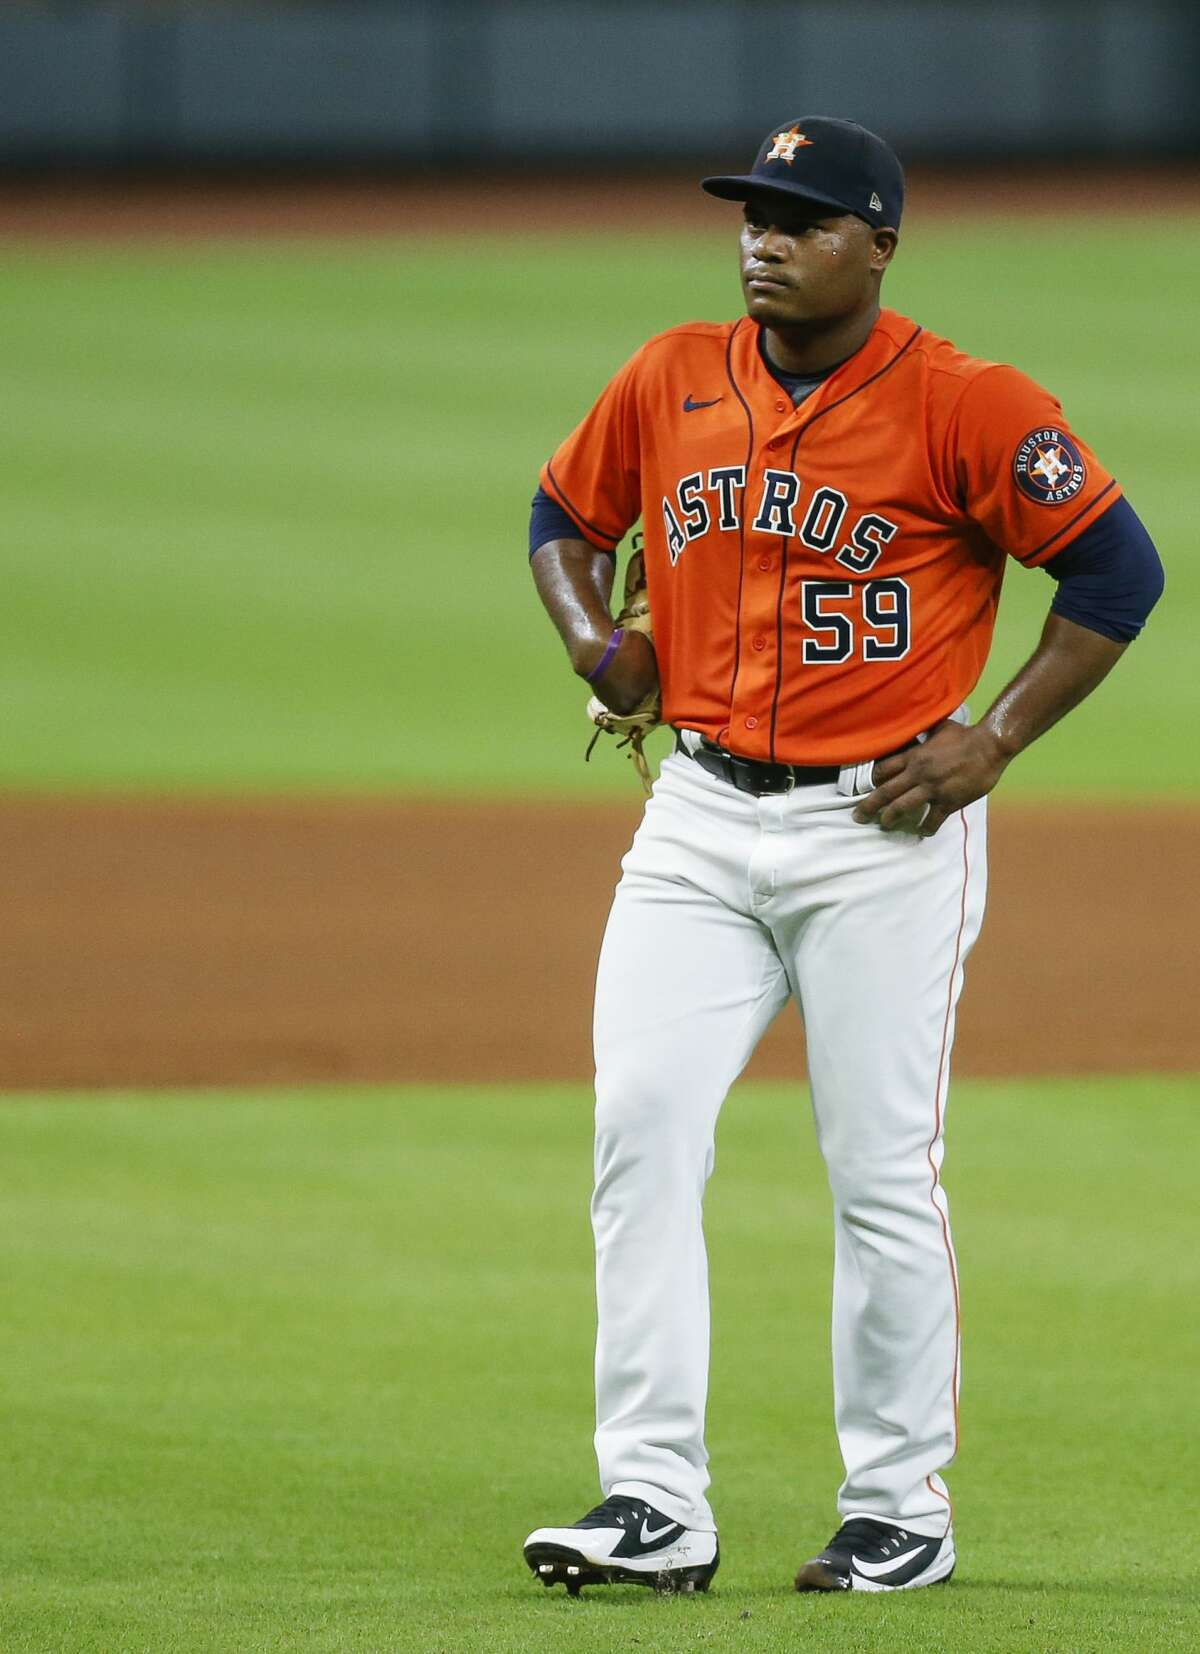 Houston Astros starting pitcher Framber Valdez (59) reacts after giving up the third walk of the first inning against the Seattle Mariners during an MLB game at Minute Maid Park on Friday, Aug. 14, 2020, in Houston.